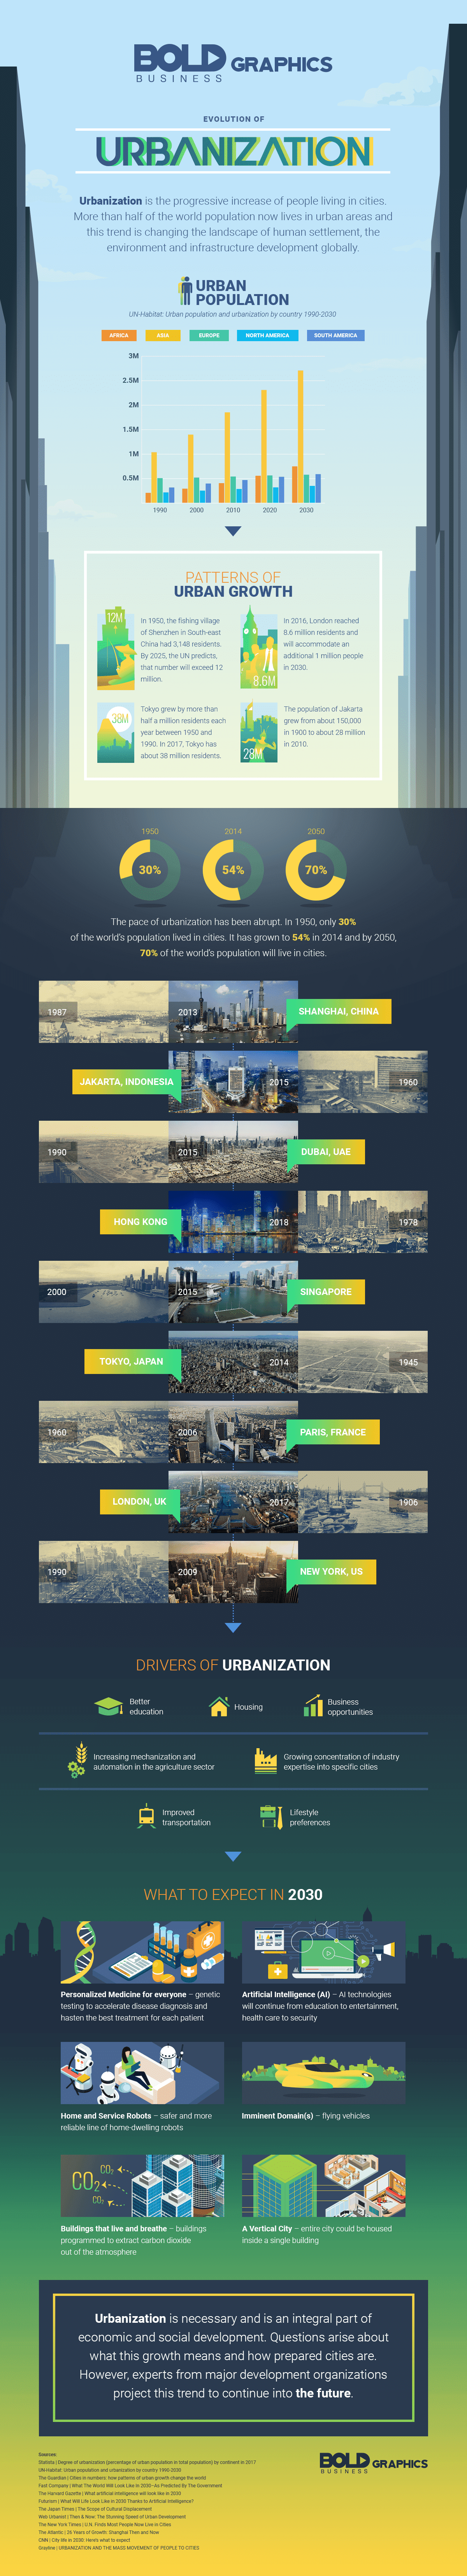 urbanization definition,urbanization examples,urbanization meaning,urbanization effects,urbanization problems, urbanization pros and cons,urban population growth,urban population of usa,urban population growth united states,urban population and rural population,urban growth rate,urban growth patterns,drivers of urbanization,urban growth projection,urbanization infographic